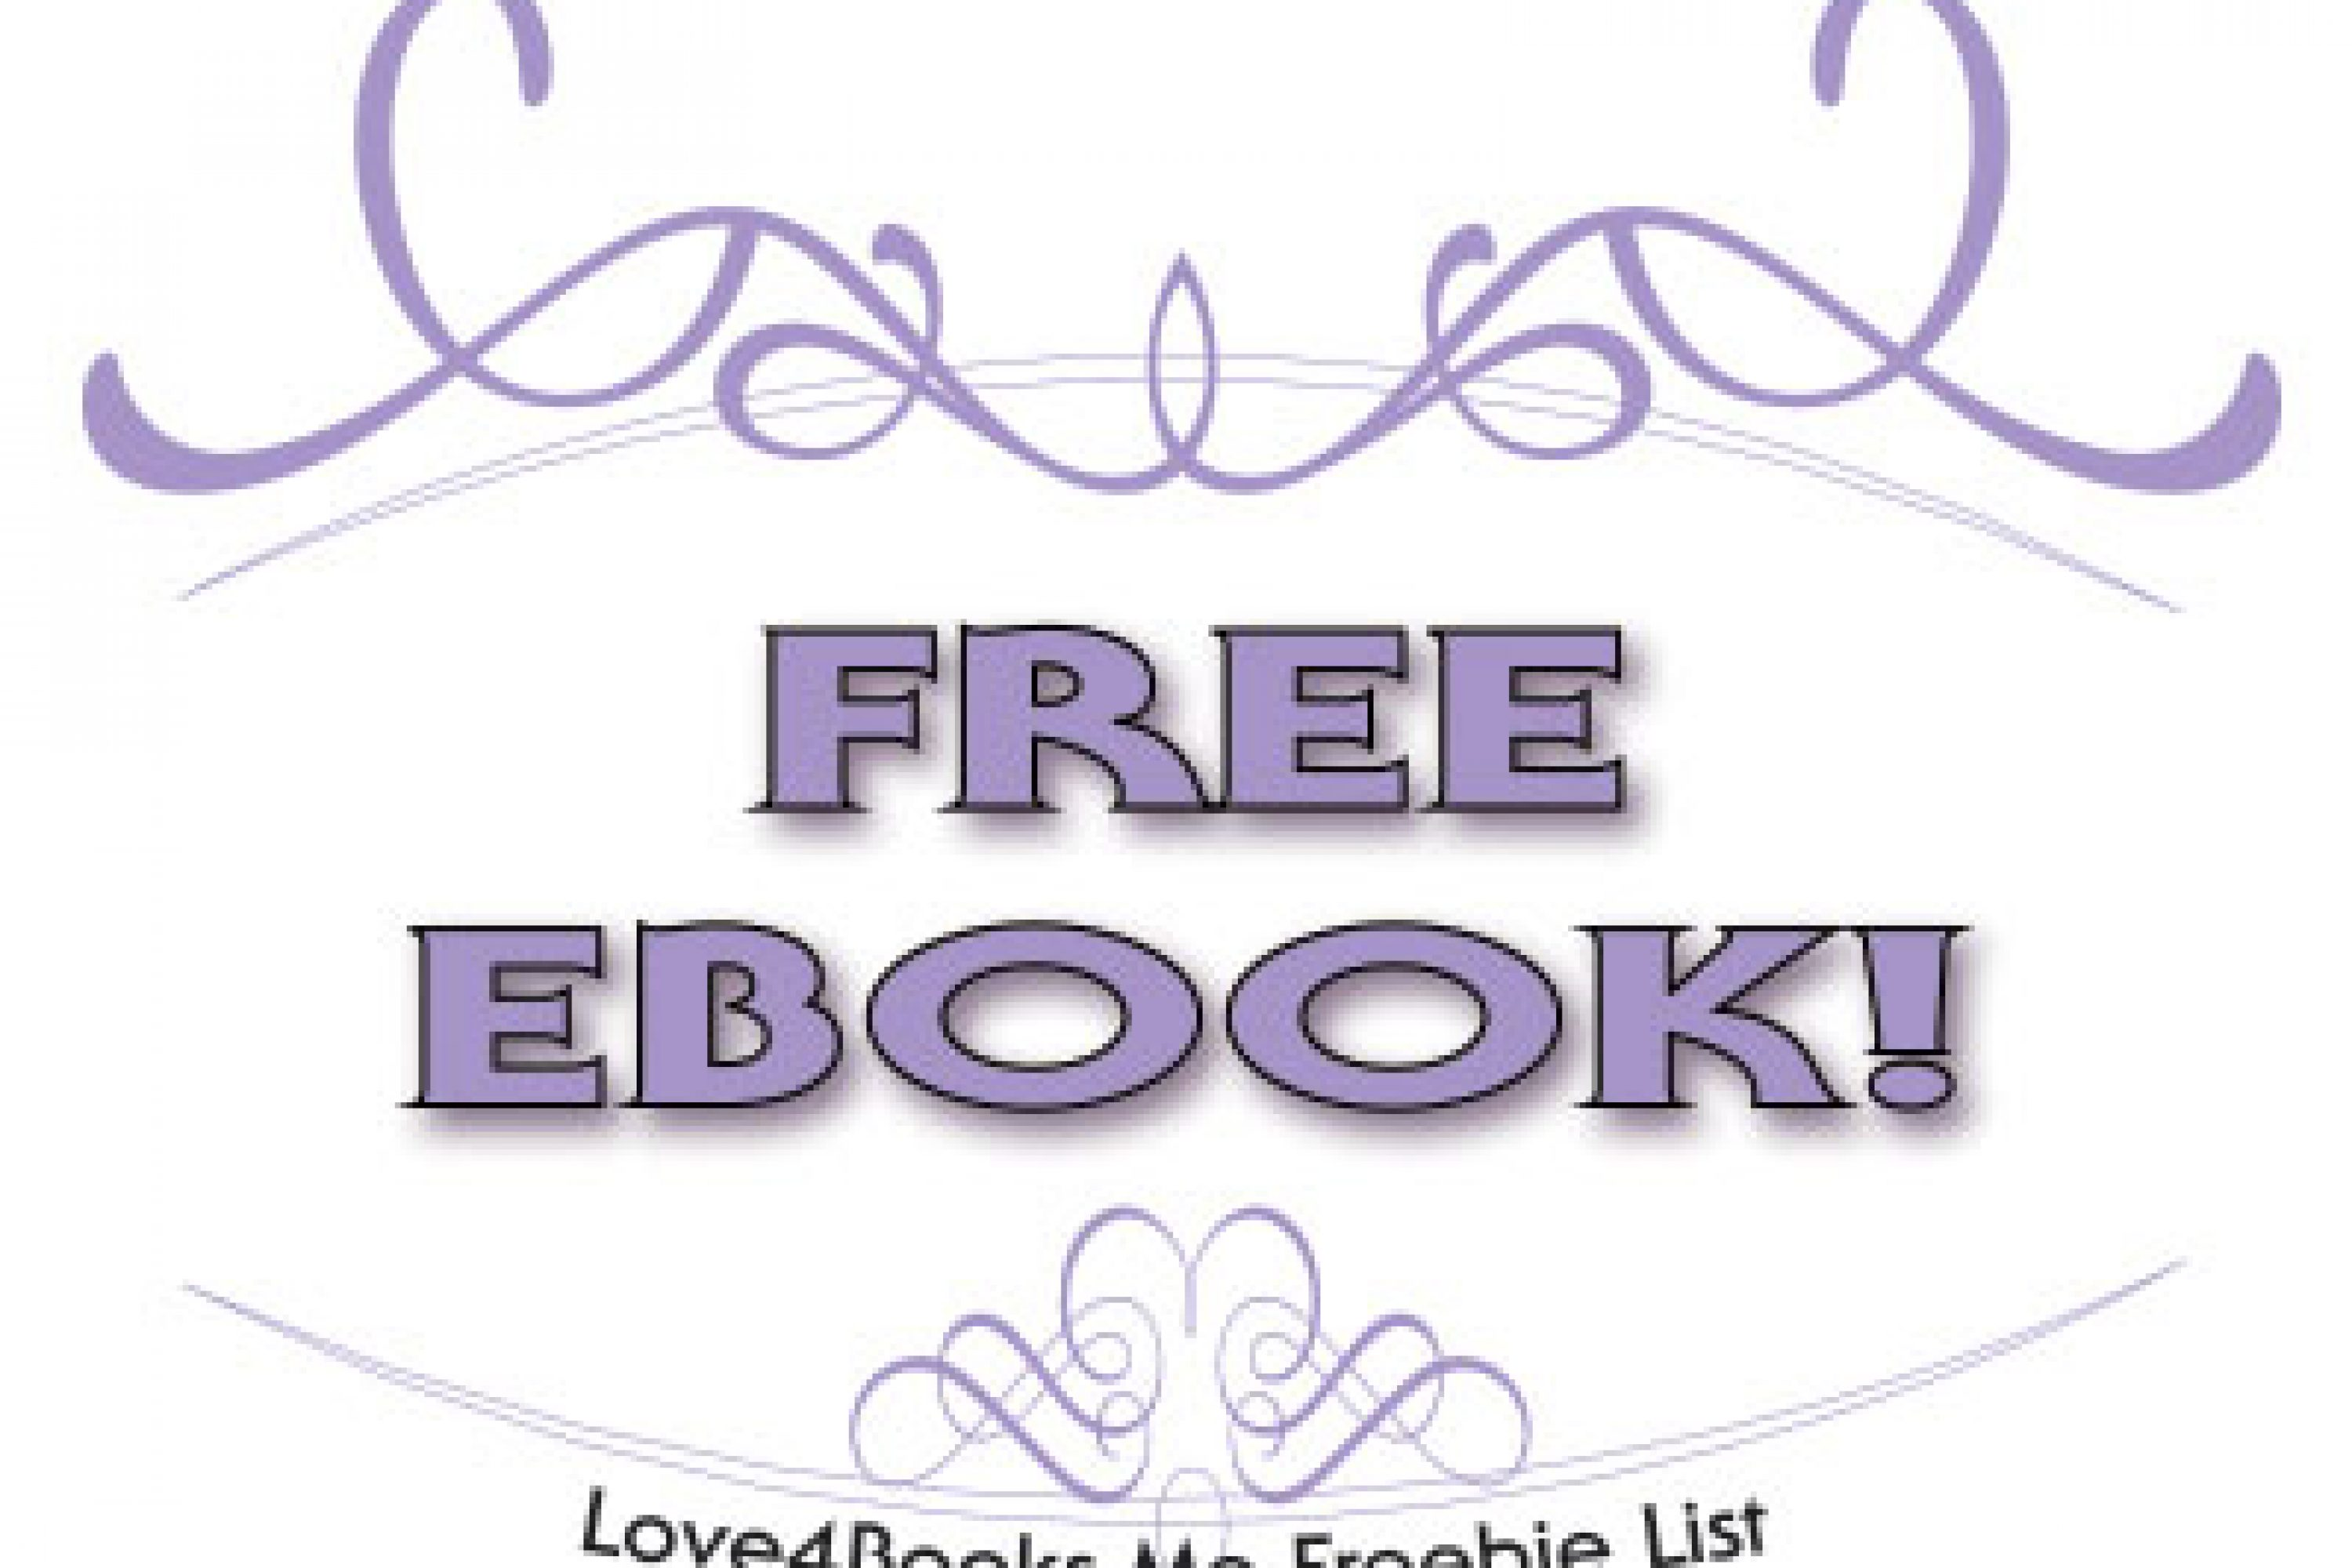 Freebie List: January 31, 2021